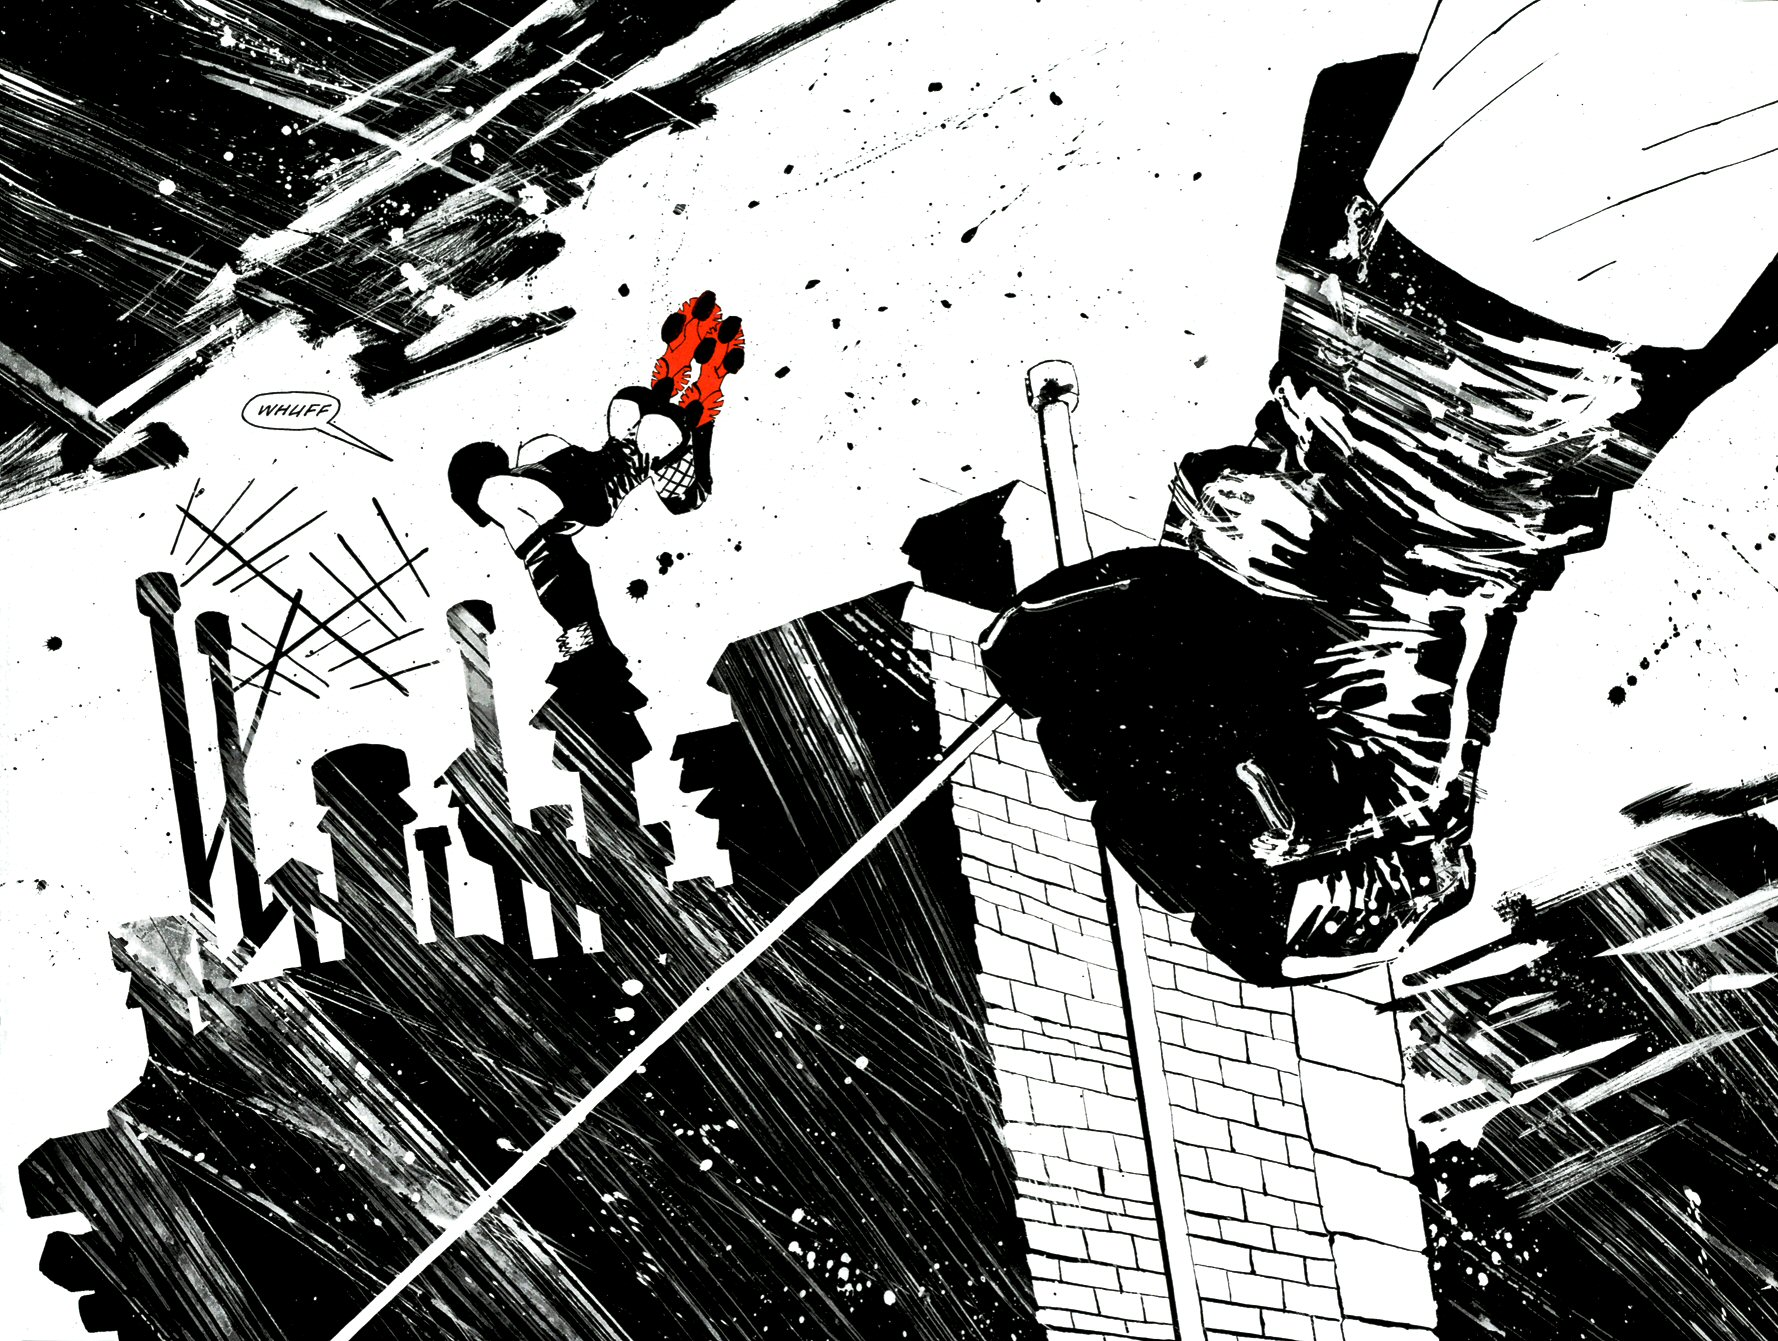 Read online Frank Miller's Holy Terror comic -  Issue # TPB - 12